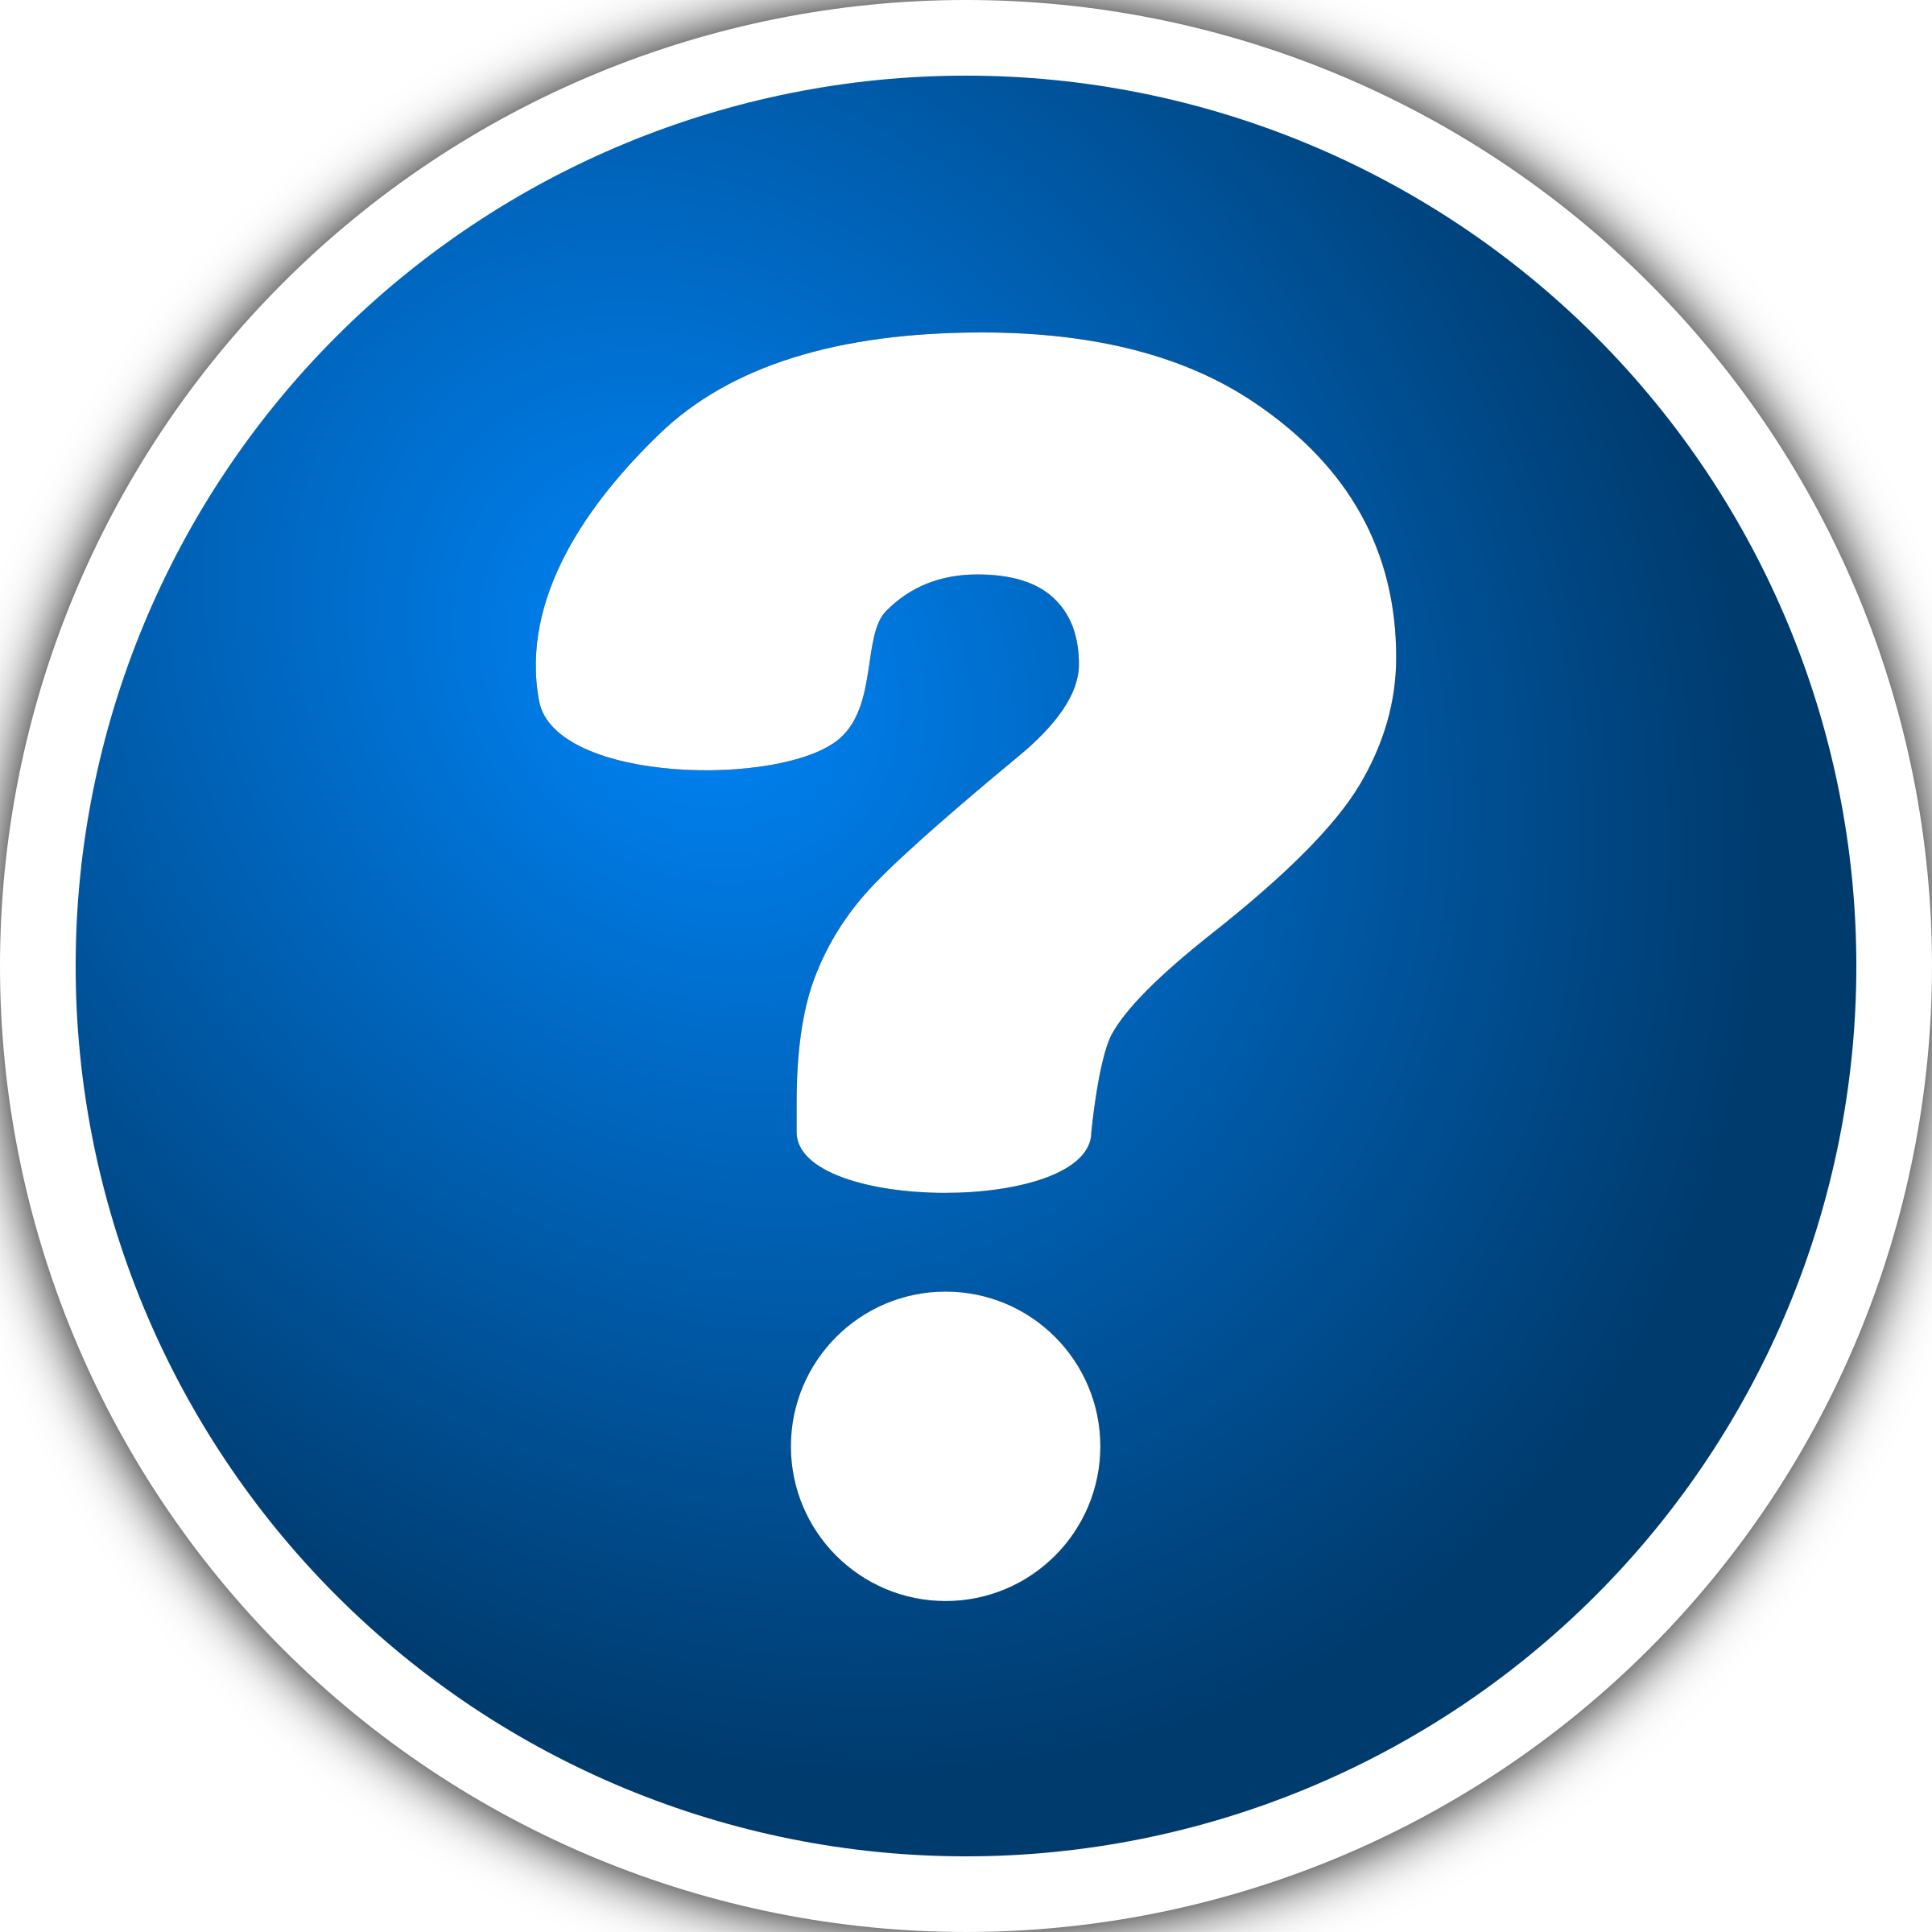 Number 1 clipart question. Icon with mark big